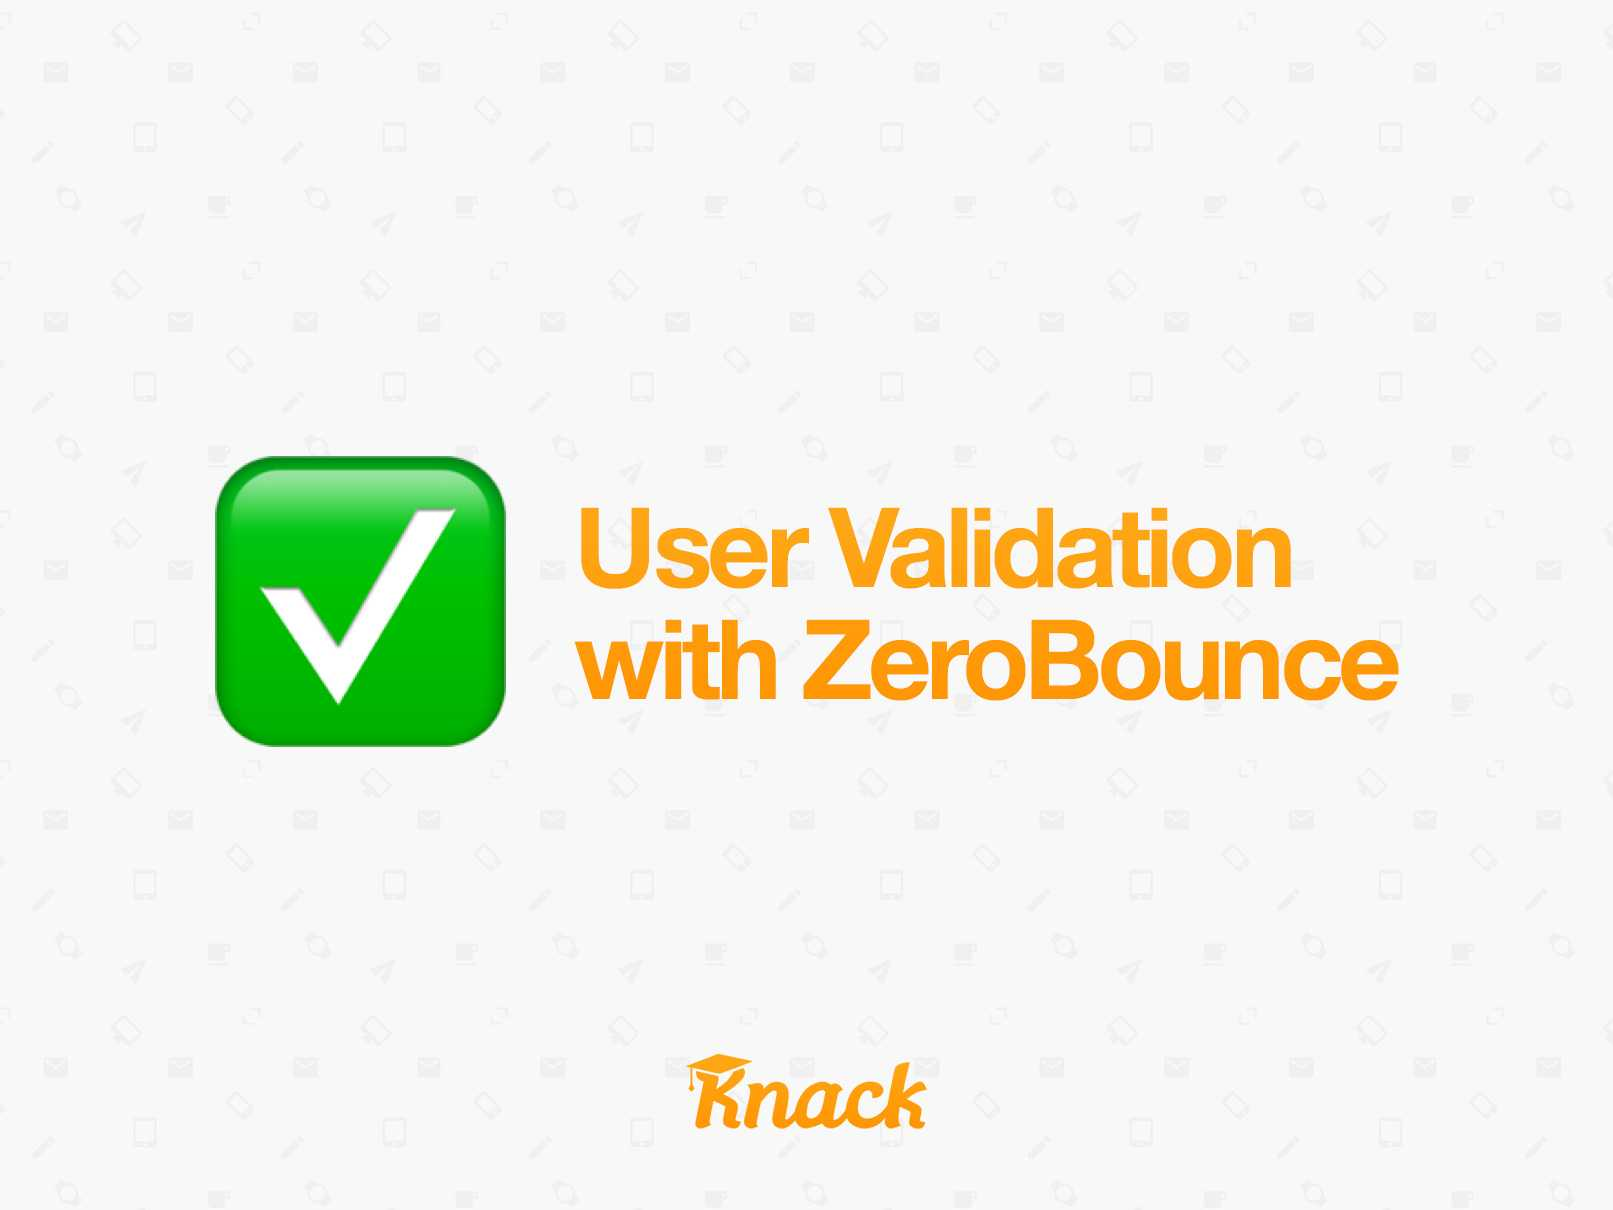 User Validation with ZeroBounce cover image